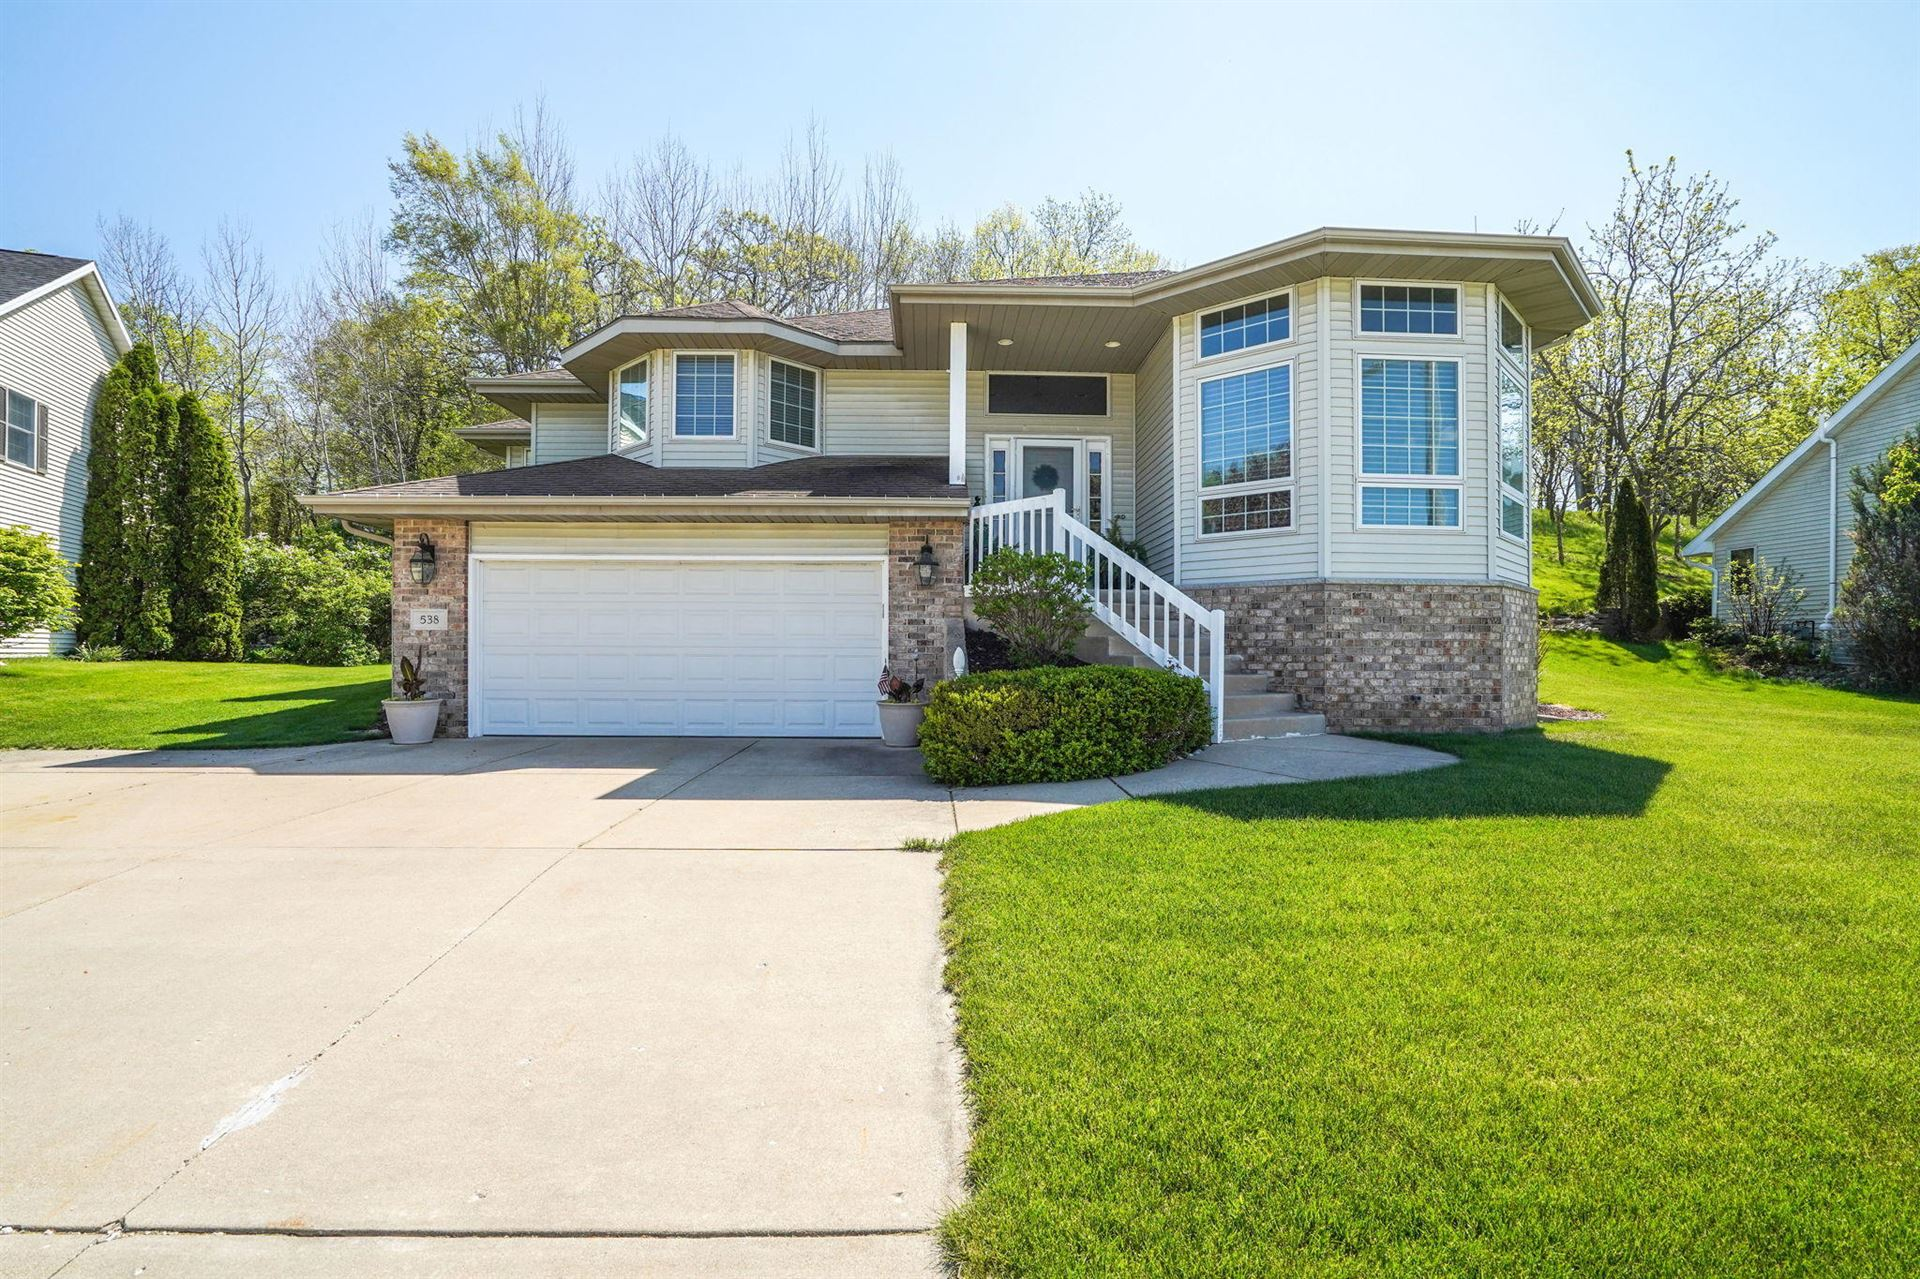 538 Fox River Hills Dr, Waterford, WI 53185 - MLS#: 1740758